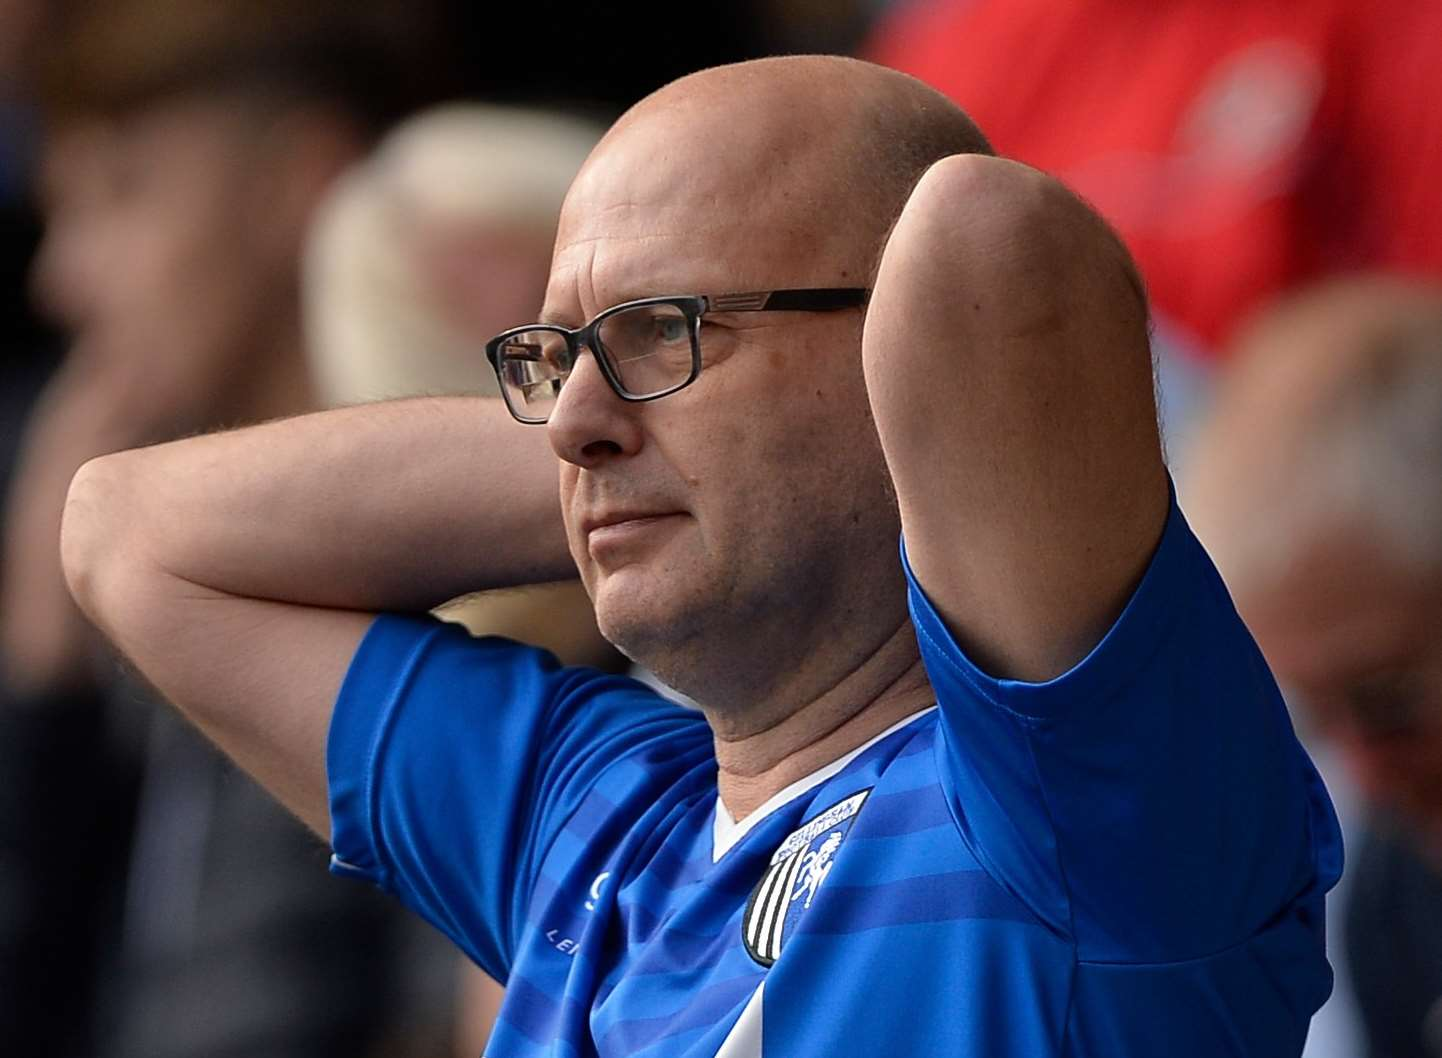 It was tough being a Gills fan at MK Dons on Saturday. Picture: Ady Kerry